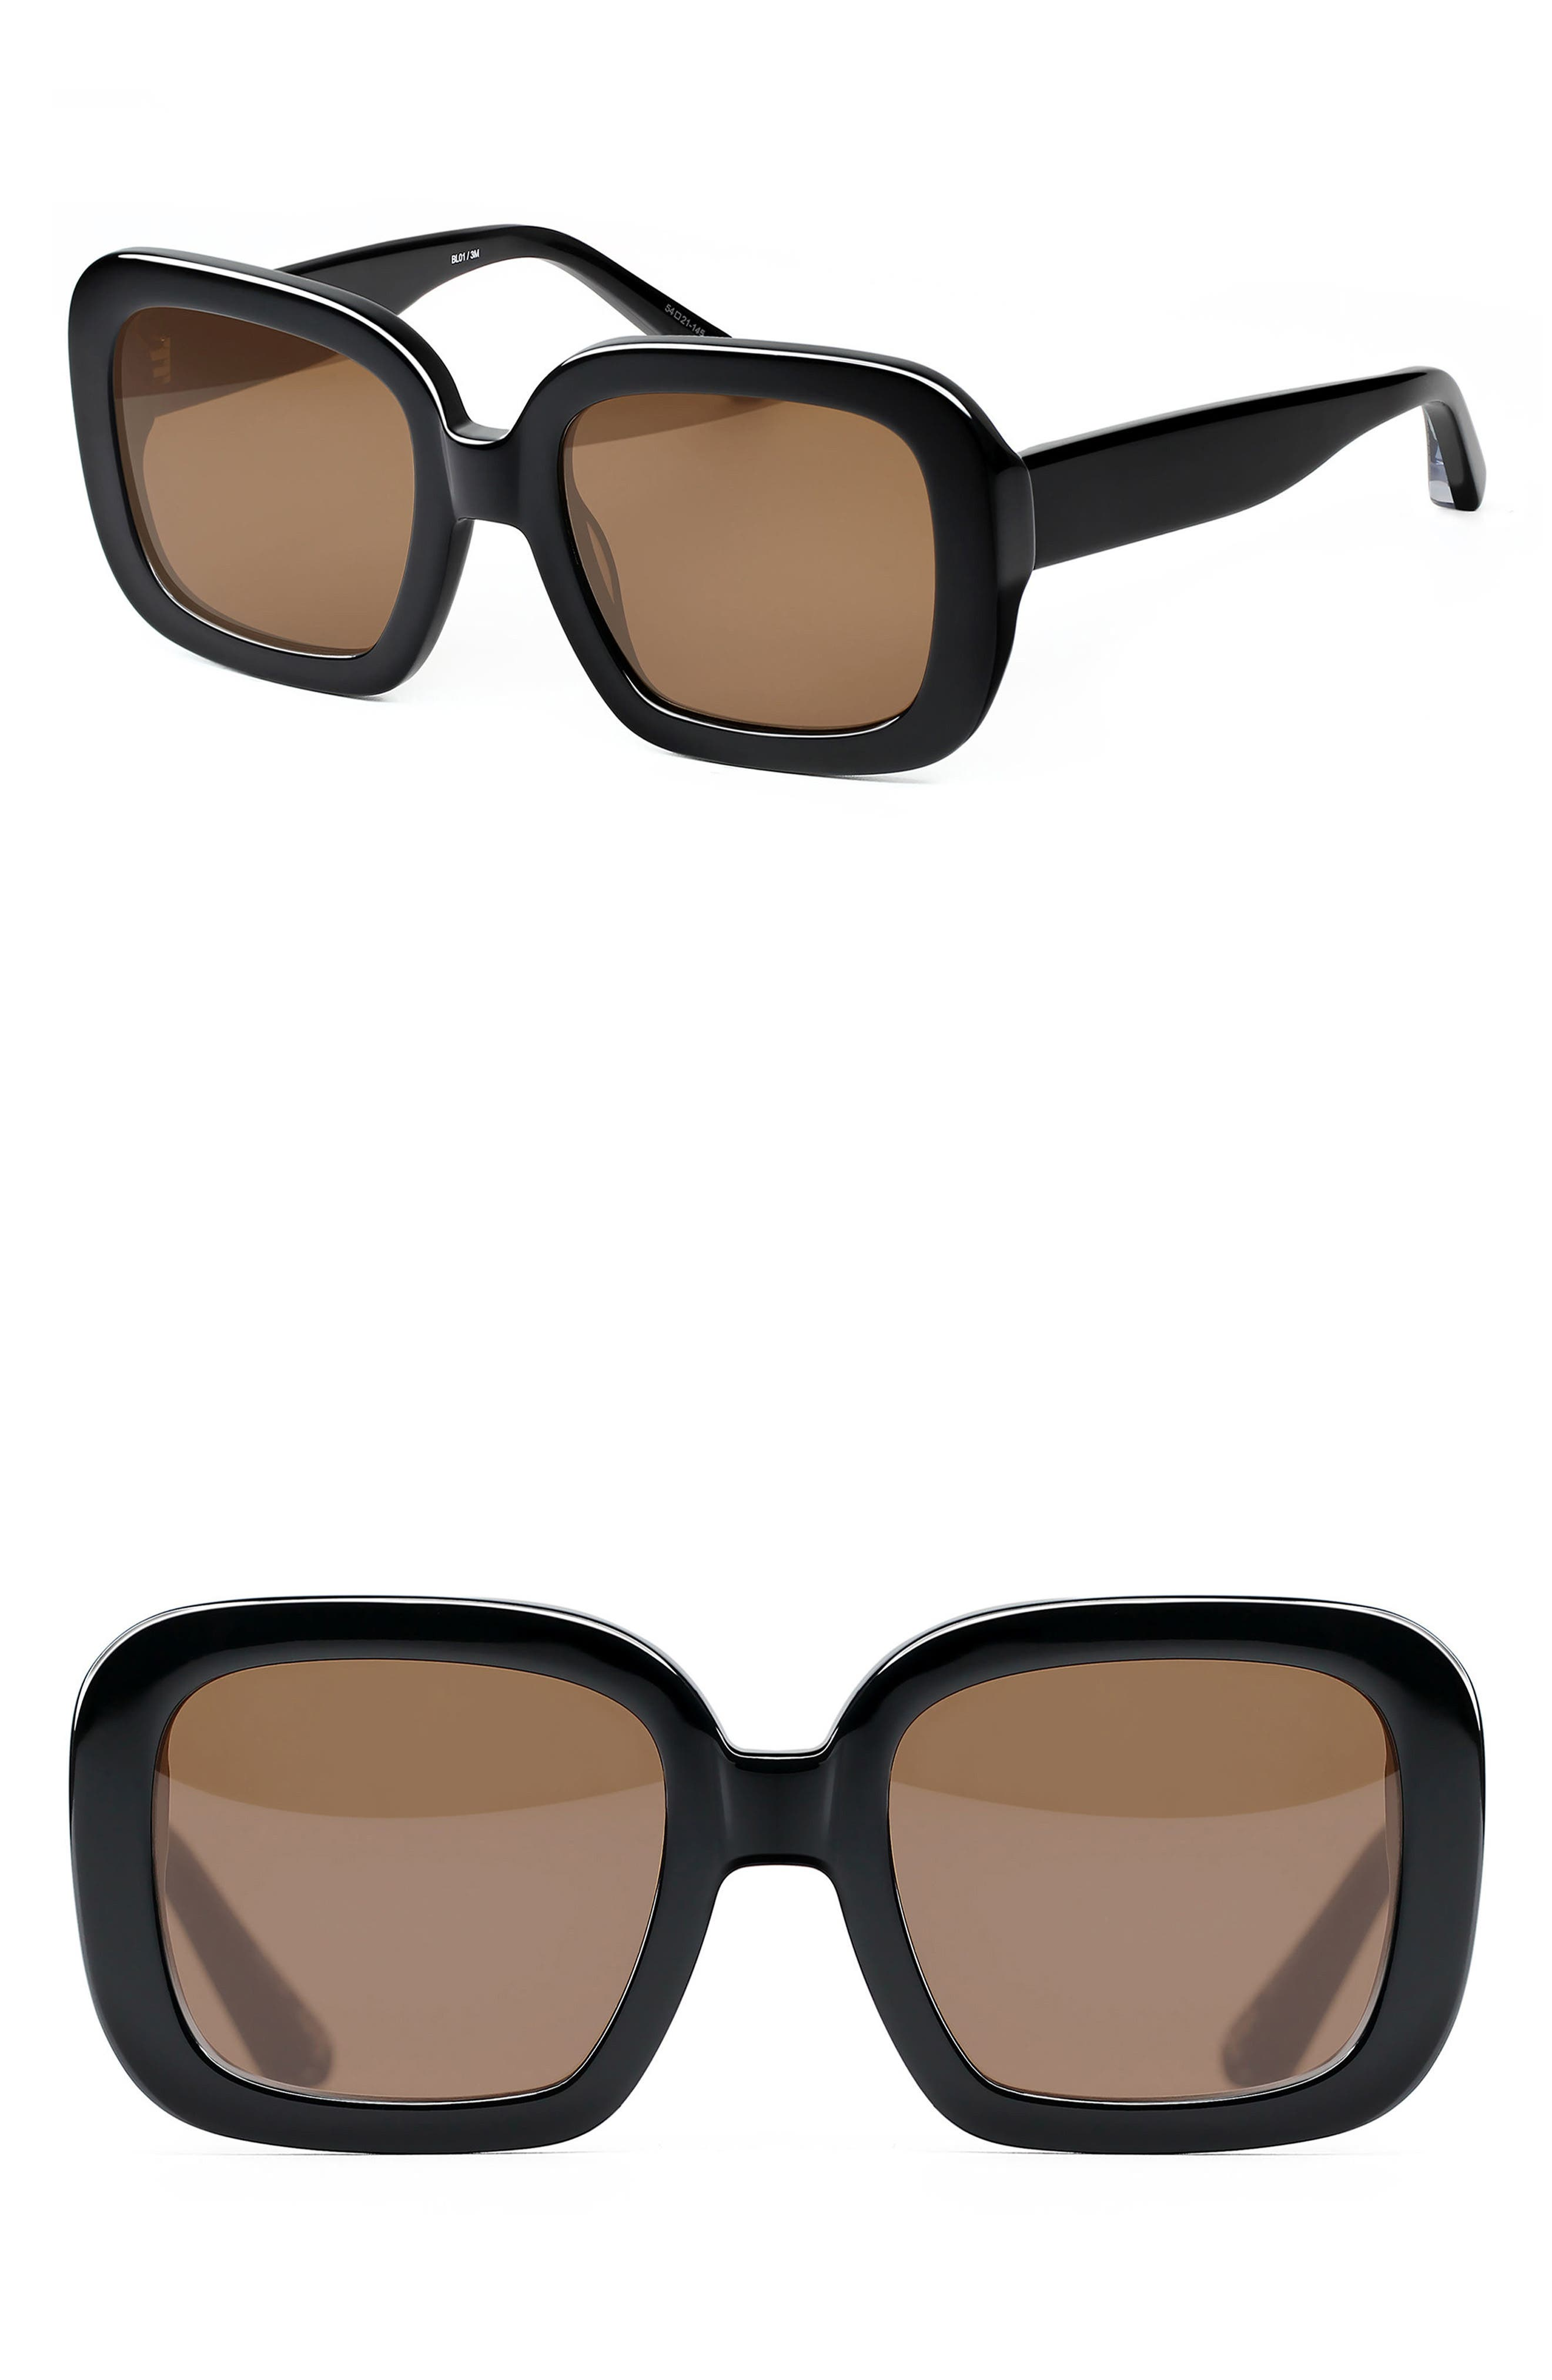 Haley 54mm Square Sunglasses,                         Main,                         color, 001